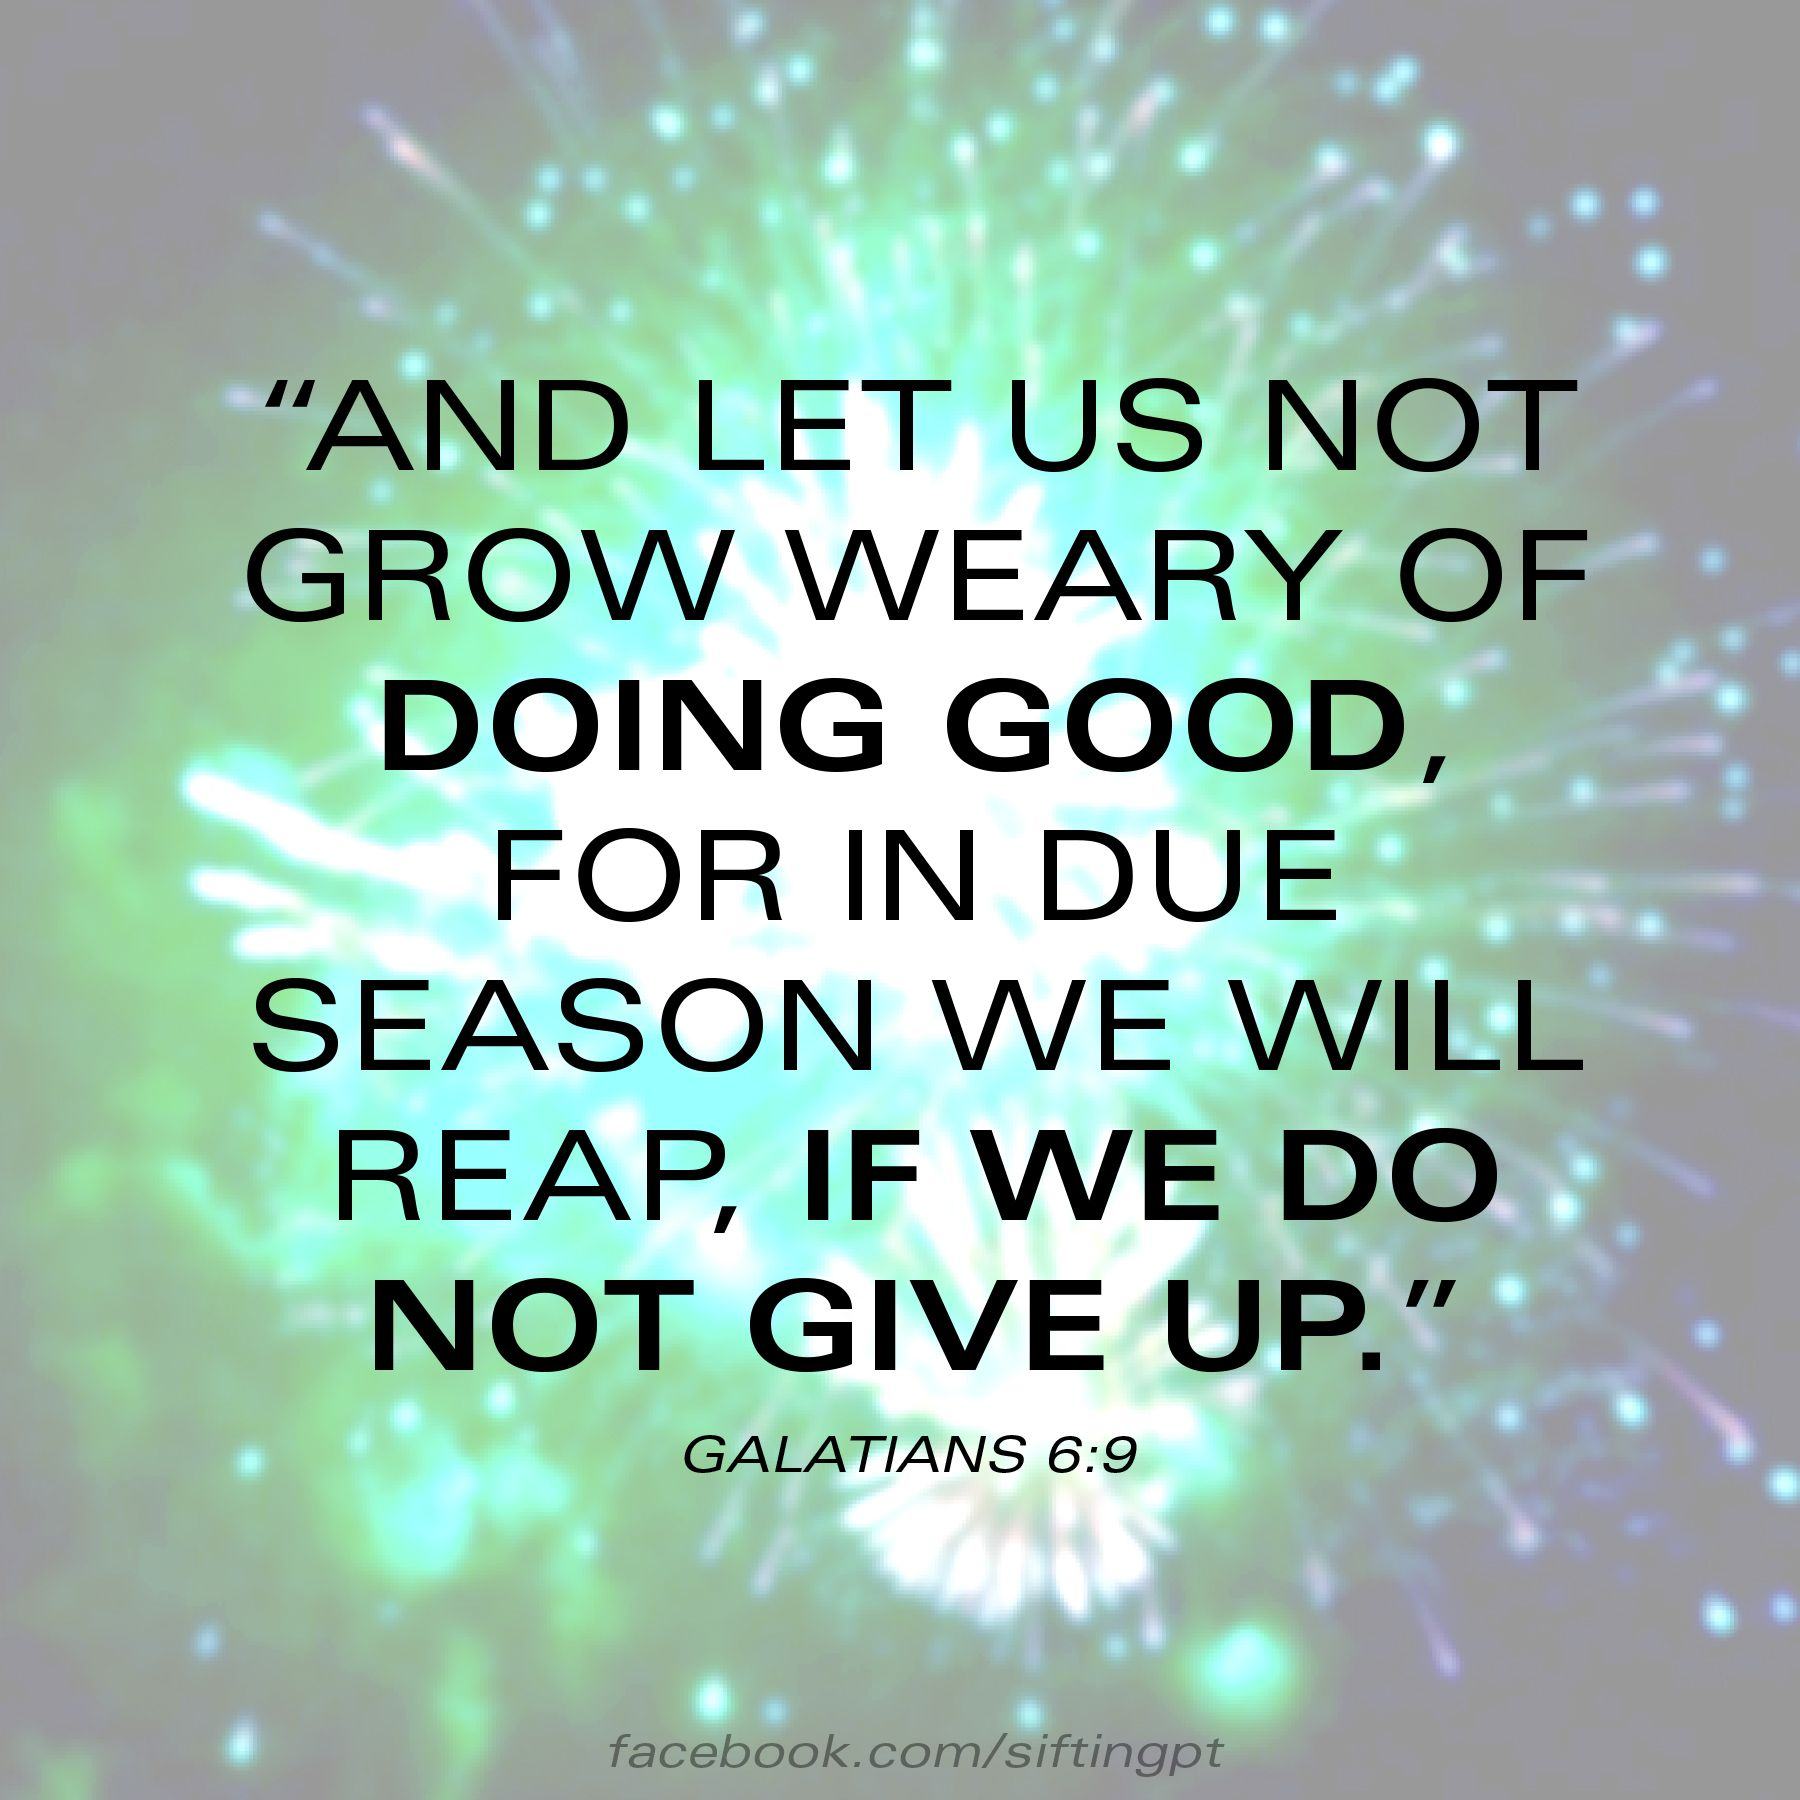 galations 6 9 don 39 t give up scriptures pinterest